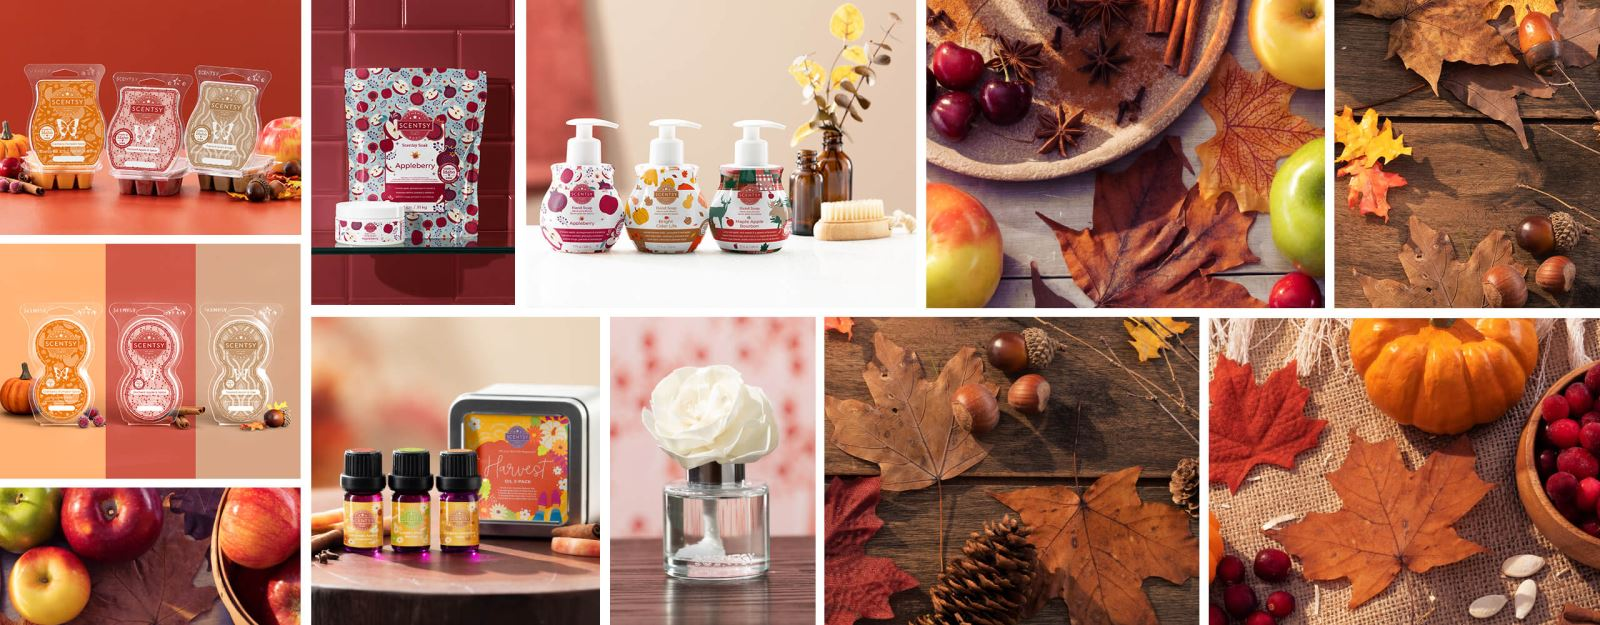 A collage of images showing the Harvest Oil 3-pack, the Harvest Scentsy Bar 3-pack, the Harvest Hand Soap 3-pack, a Buttercup Belle Fragrance Flower, three Scentsy Pod Twin Packs and Appleberry Scentsy Soak and Body Scrub, all surrounded by fall décor.